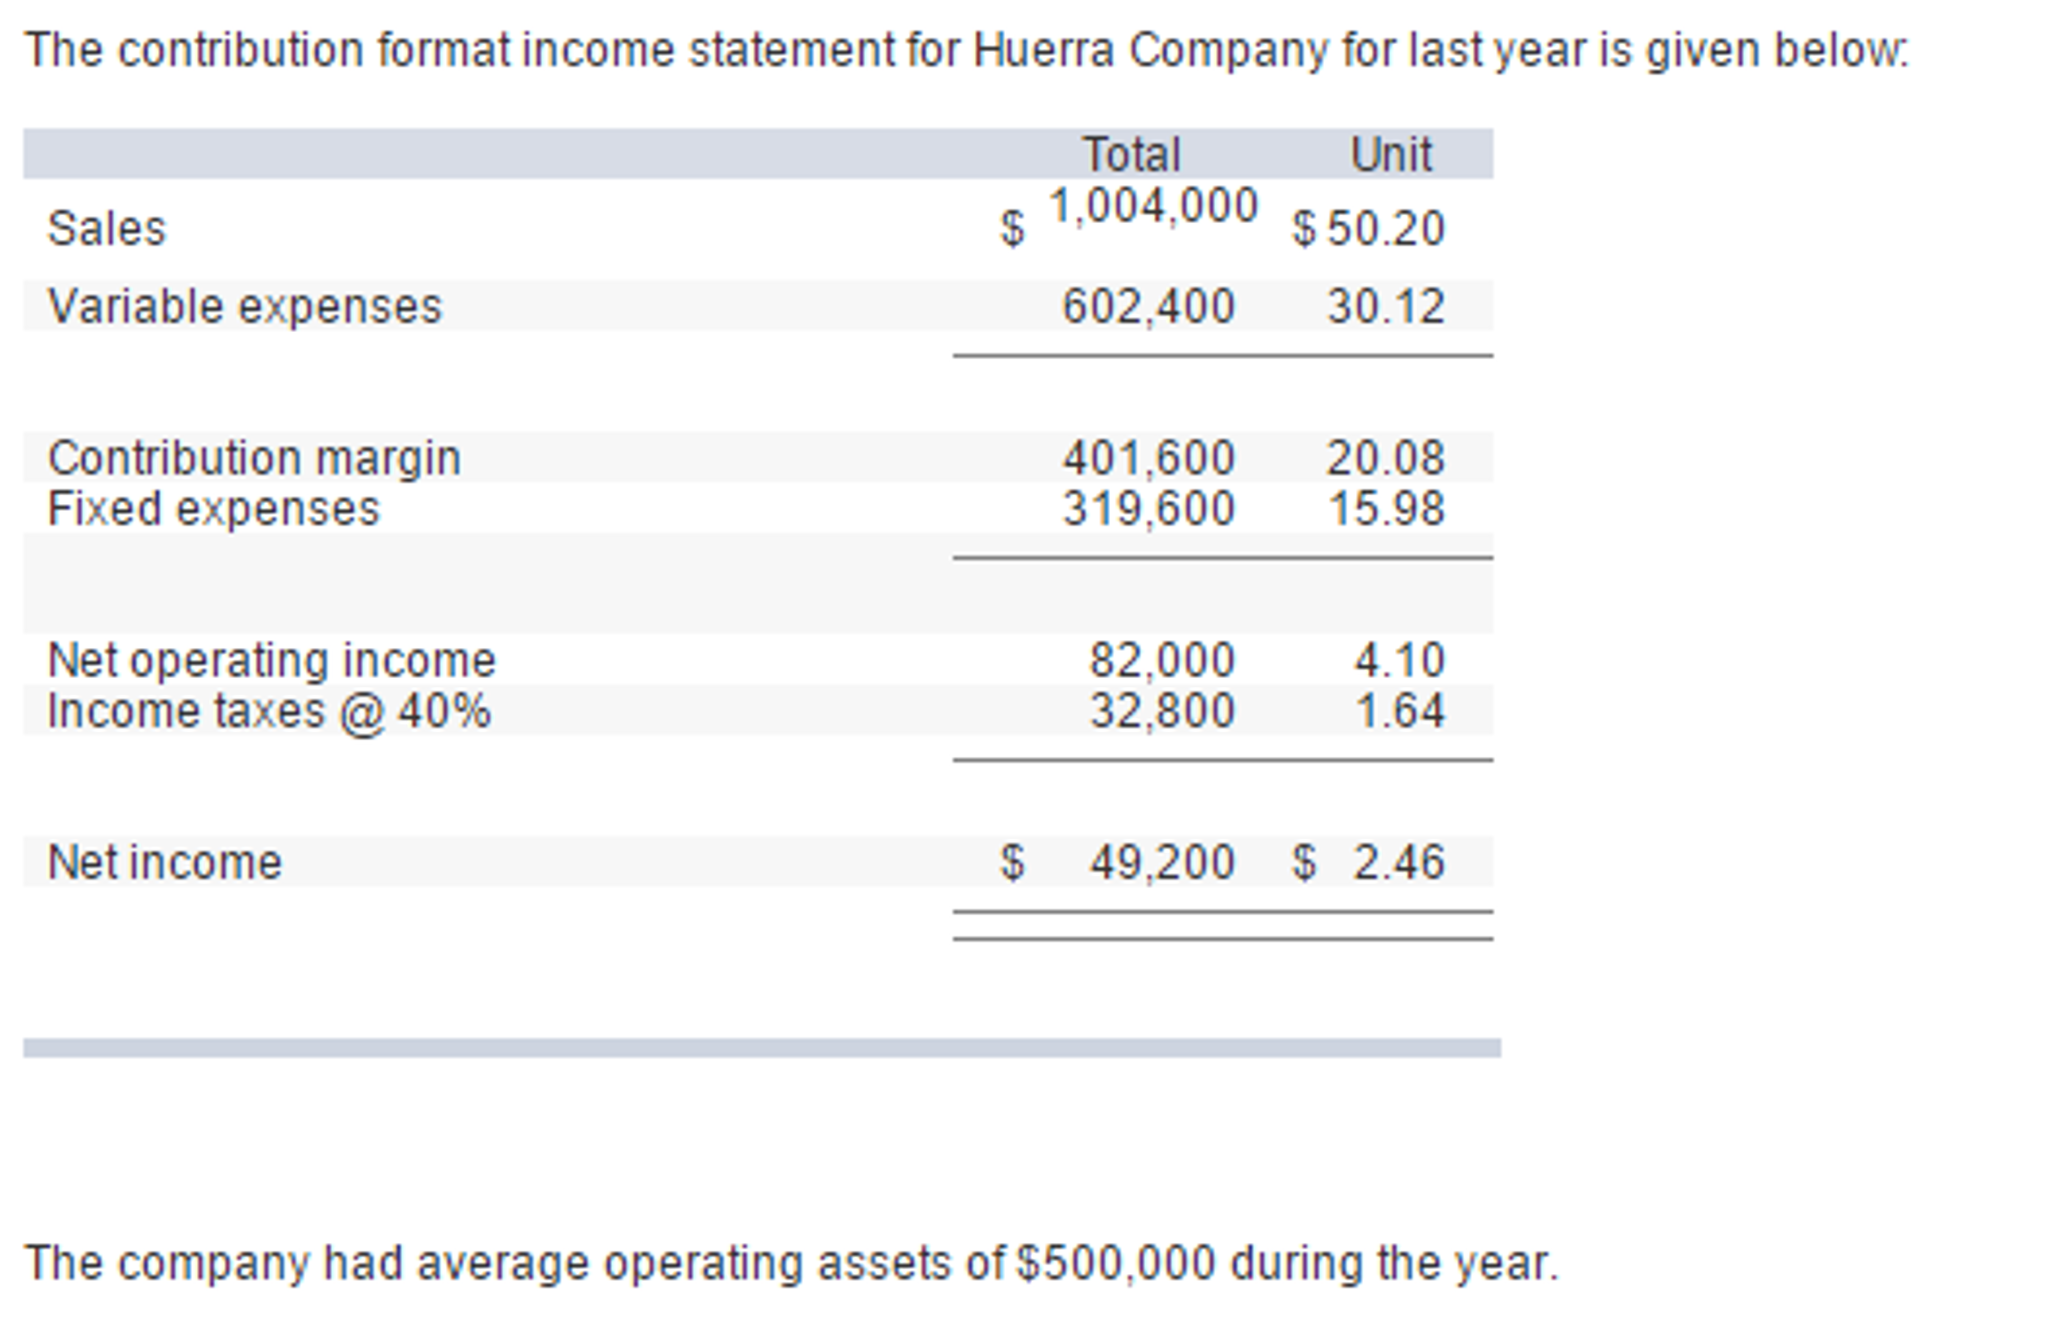 Stunning Income Statement Formats Images Best Resume Examples  Media%2Fb07%2Fb07aa59a B3c6 4bef A369 98eb12ce3d01%2FphpobZShG Income  Statement Formats Proper ...